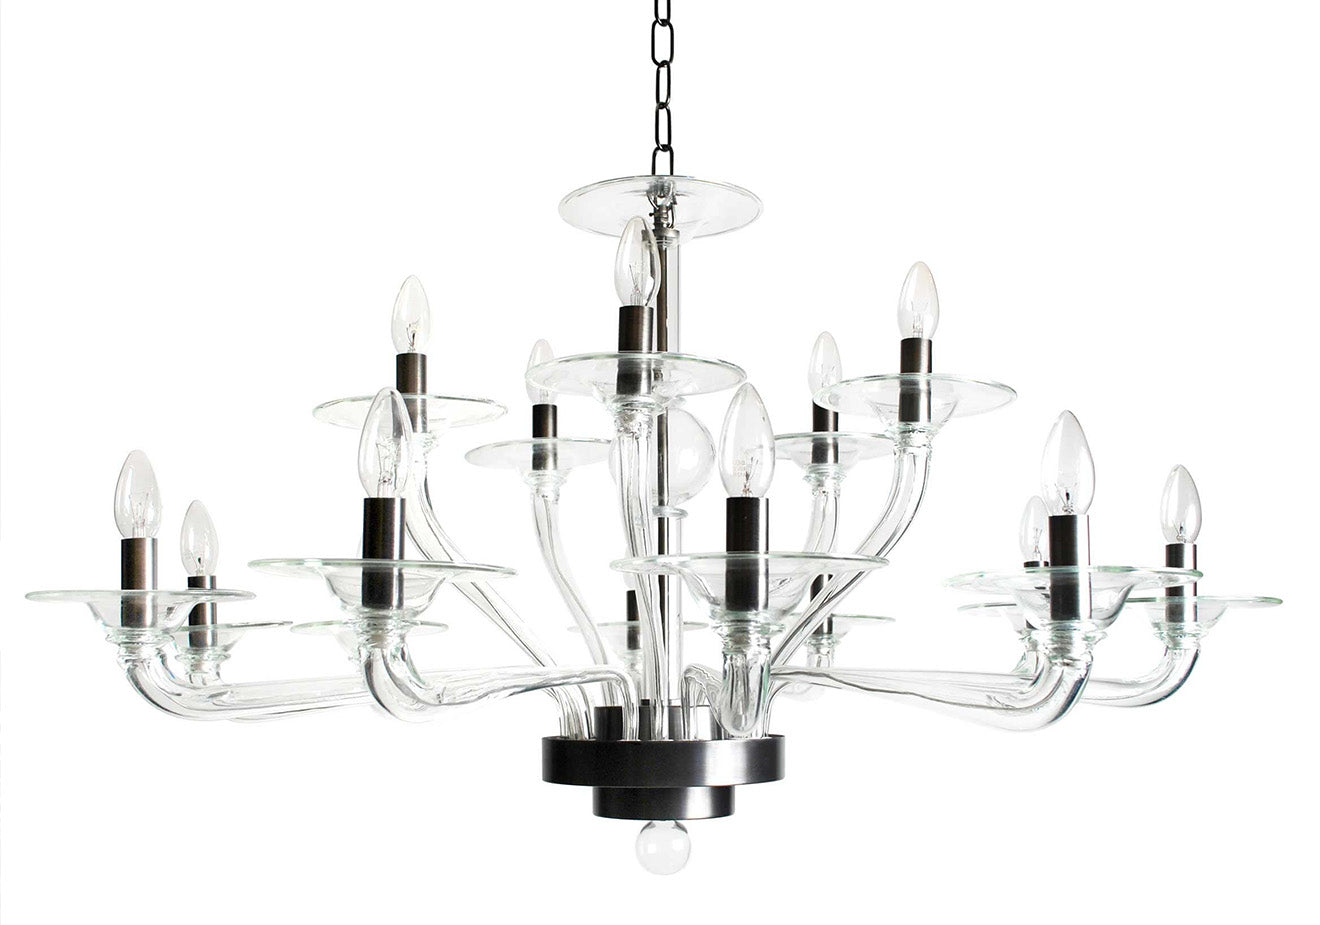 Villaverde luxury lighting designs glass contemporary chandelier